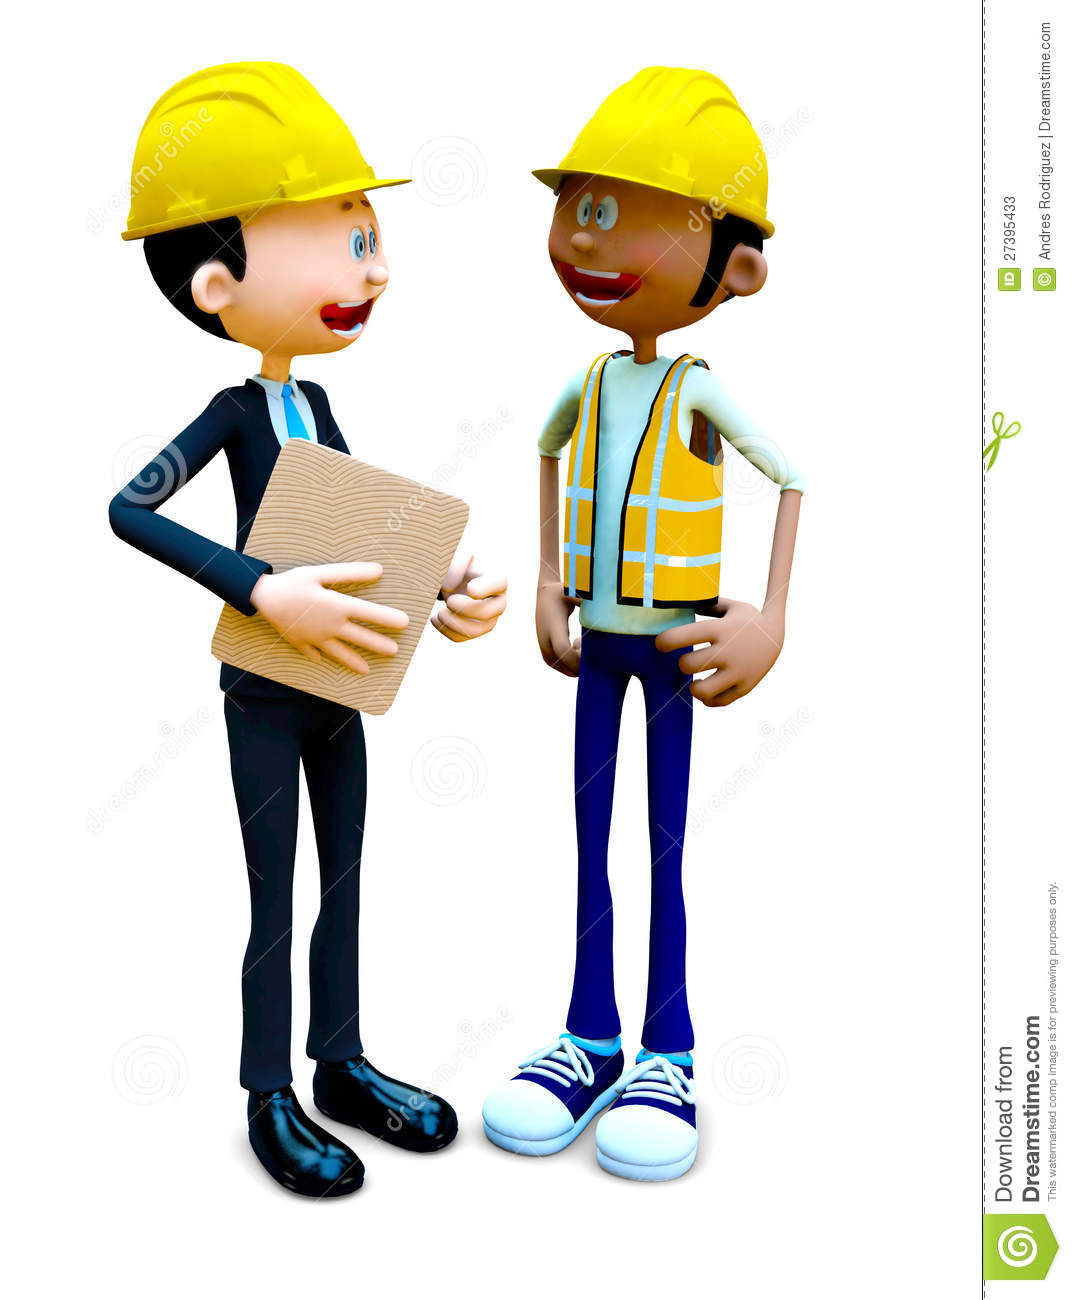 3D construction workers talking and wearing helmets - isolated.